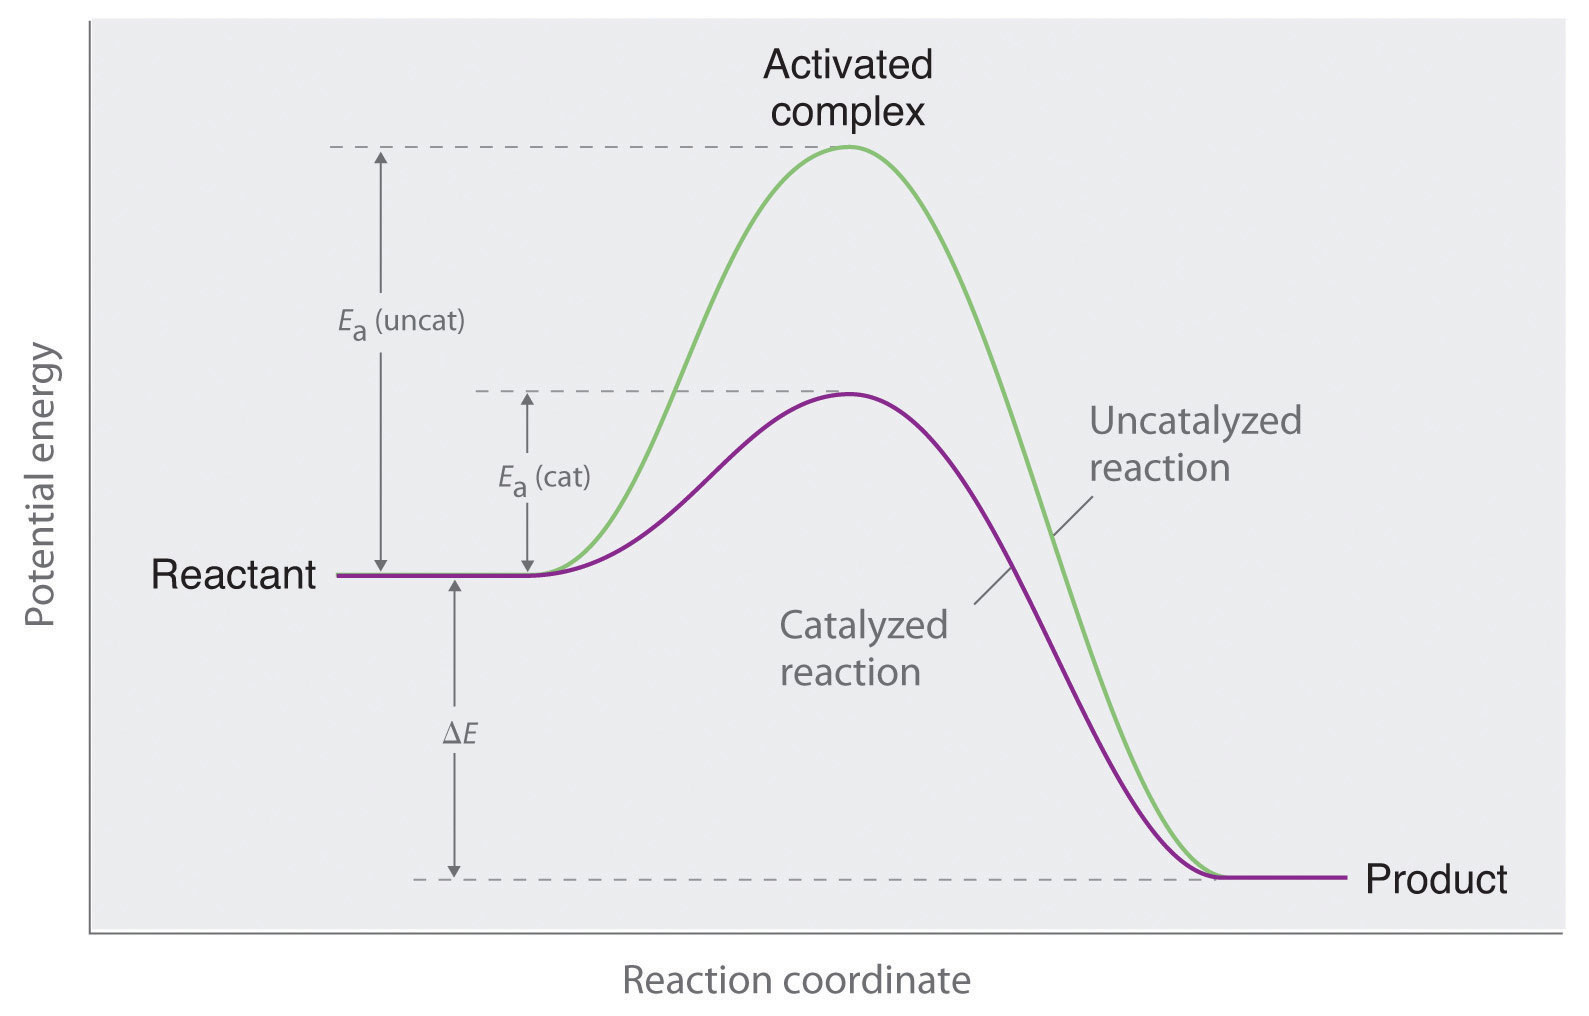 How are the following aspects of a reaction affected by the addition of a catalyst?